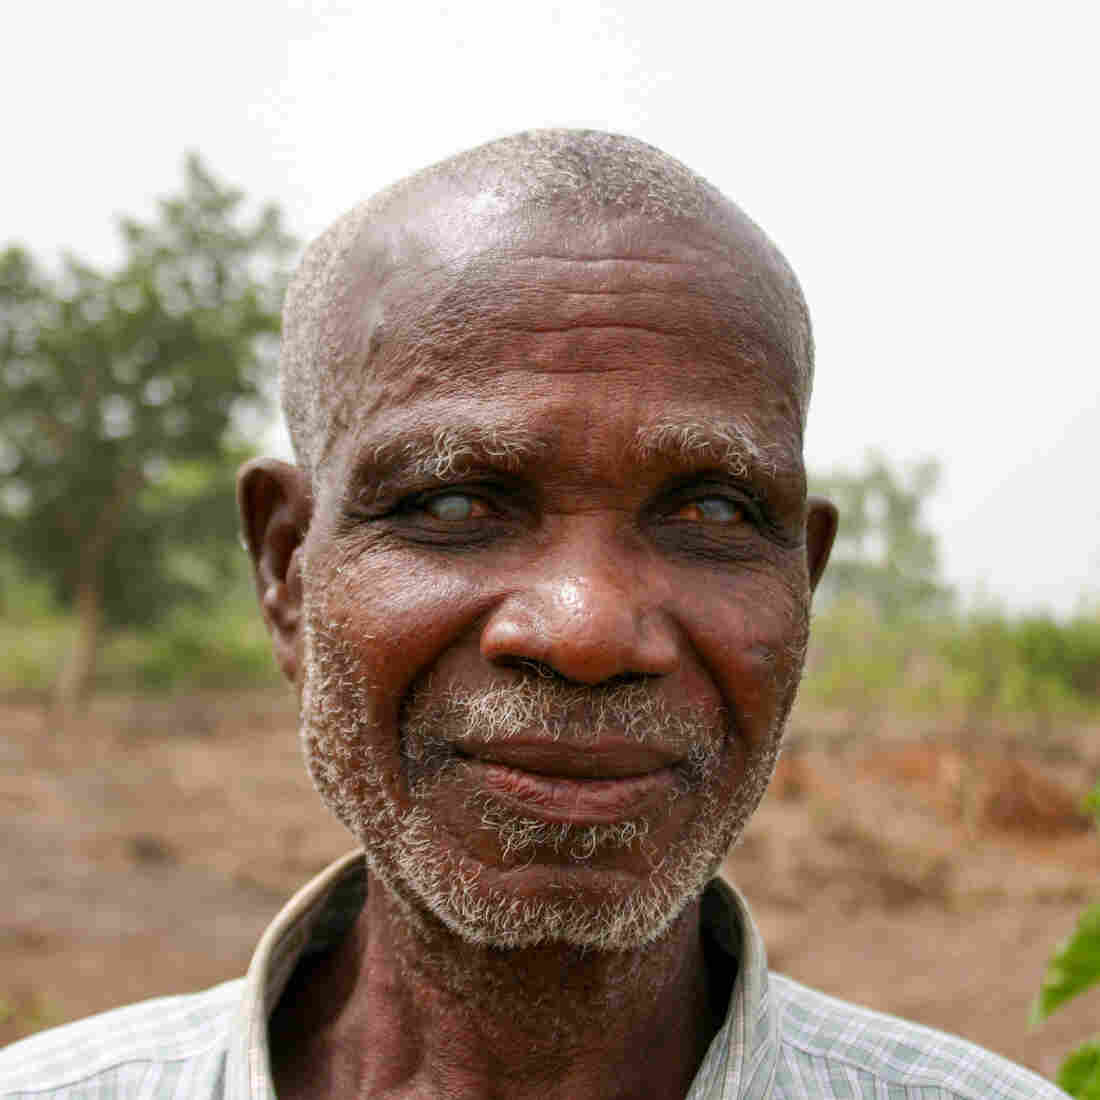 Emmanuel Kwame, 60, lost his sight to river blindness as a young man. He lives in Asubende, Ghana, earning a living as a farmer and fisherman.